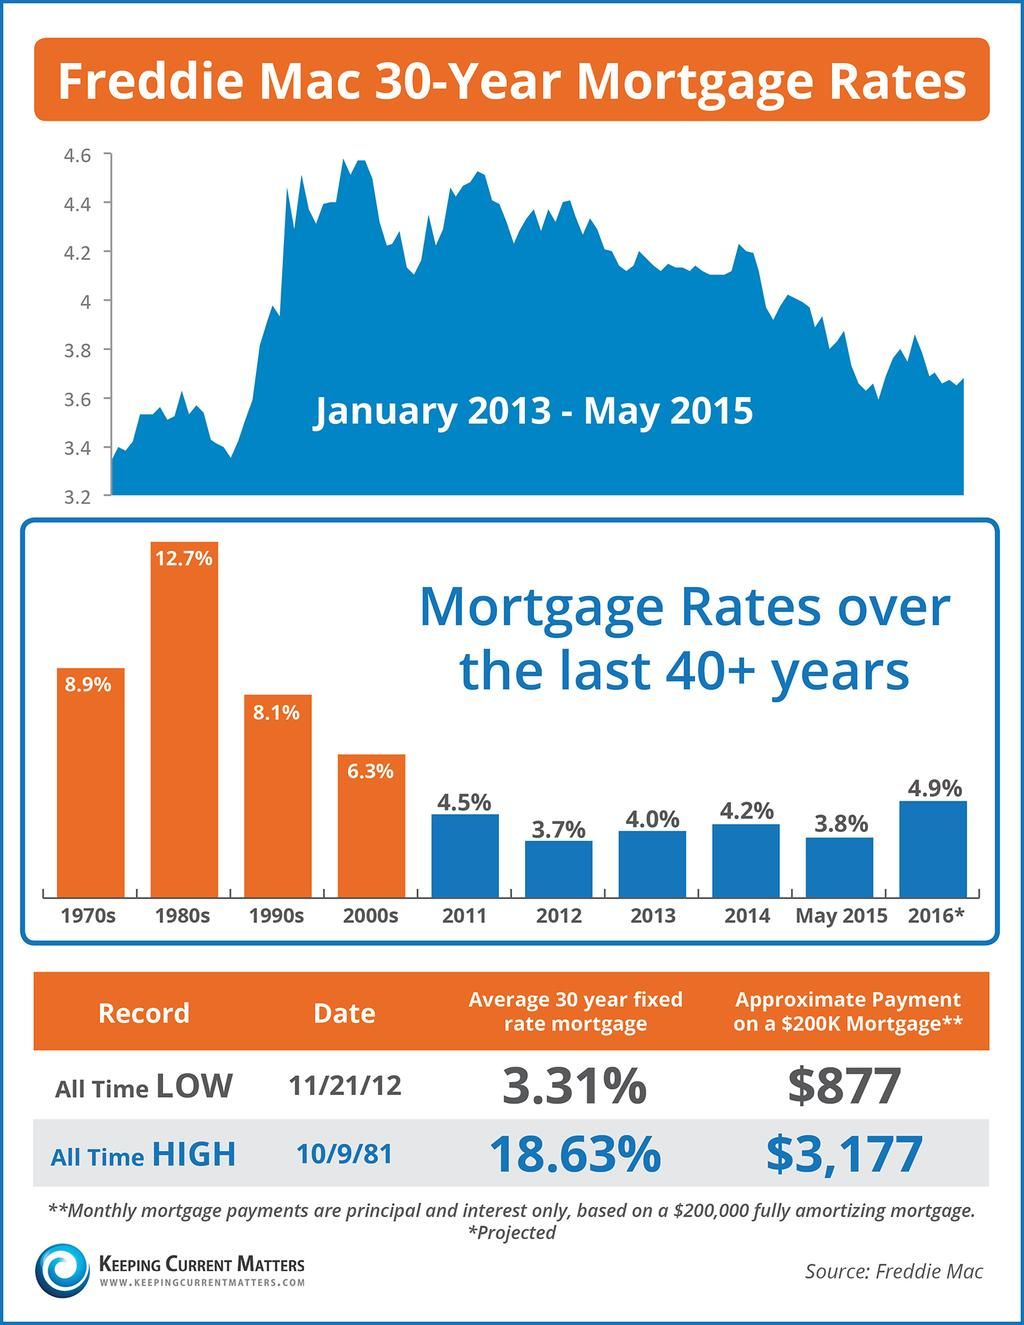 Cami Baker On Twitter Mortgage Rates Mortgage Interest Rates 30 Year Mortgage